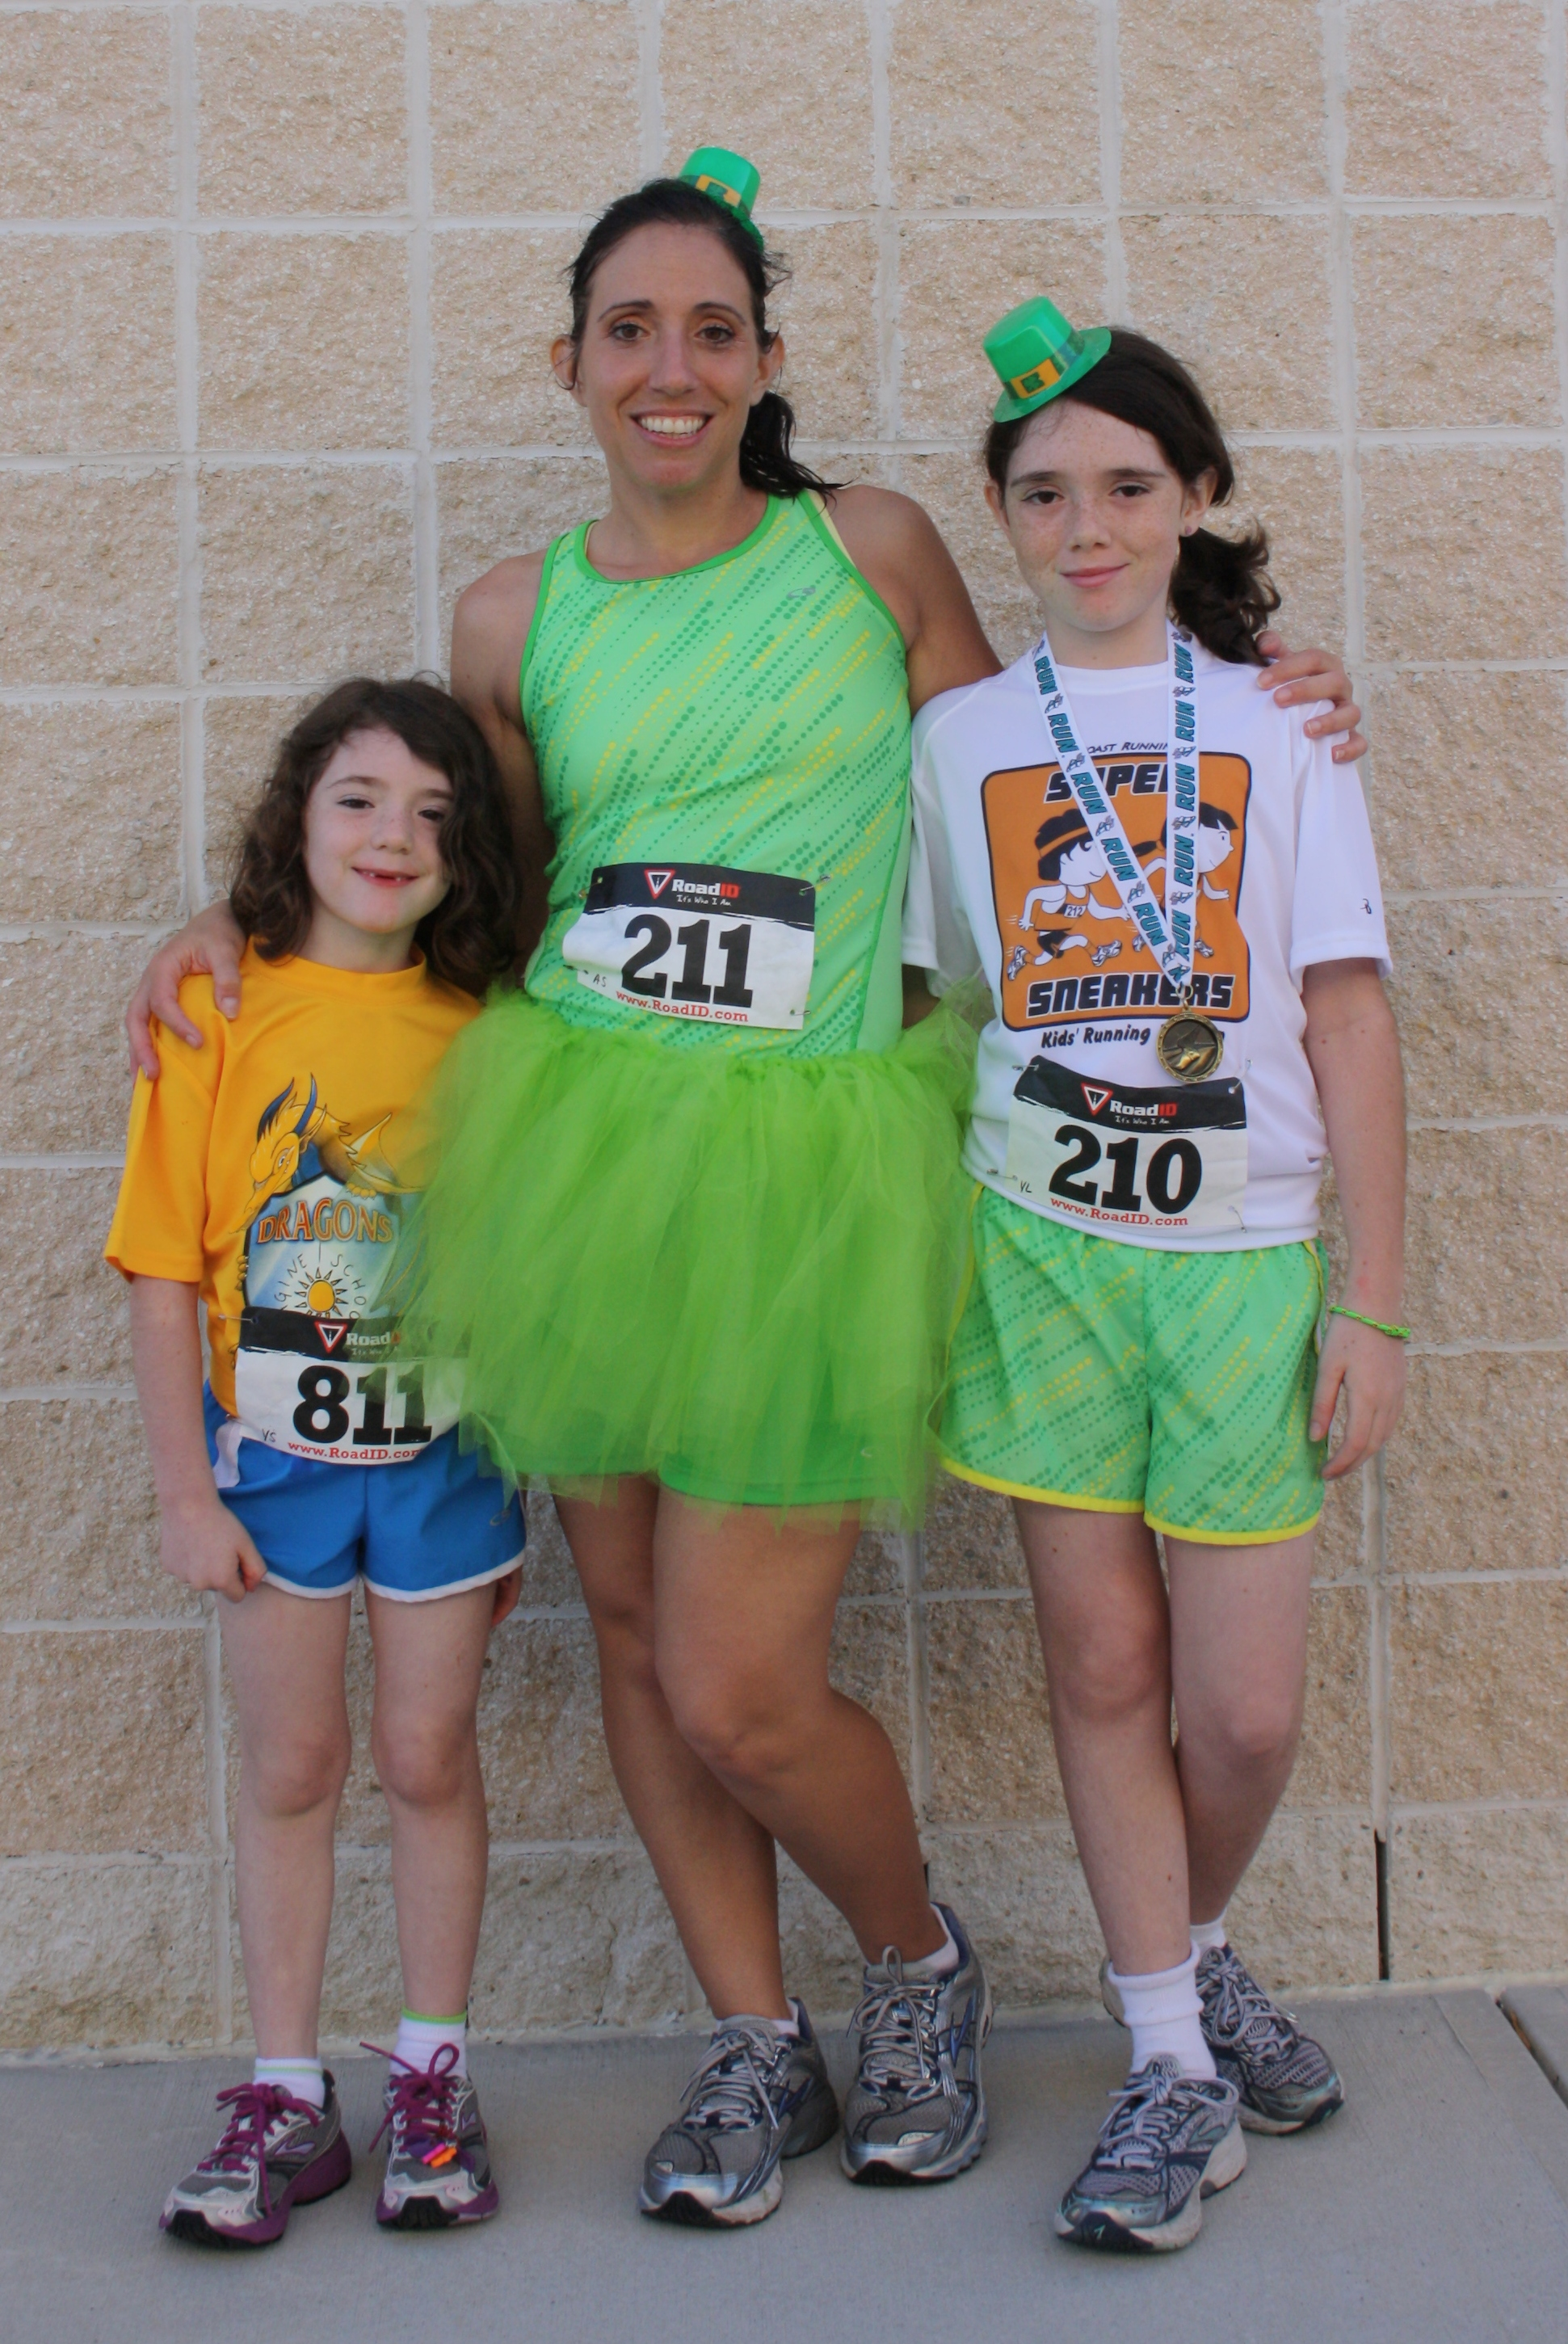 1springsprint5k1 RANdom Thoughts from a Runner Who Wears Tutus